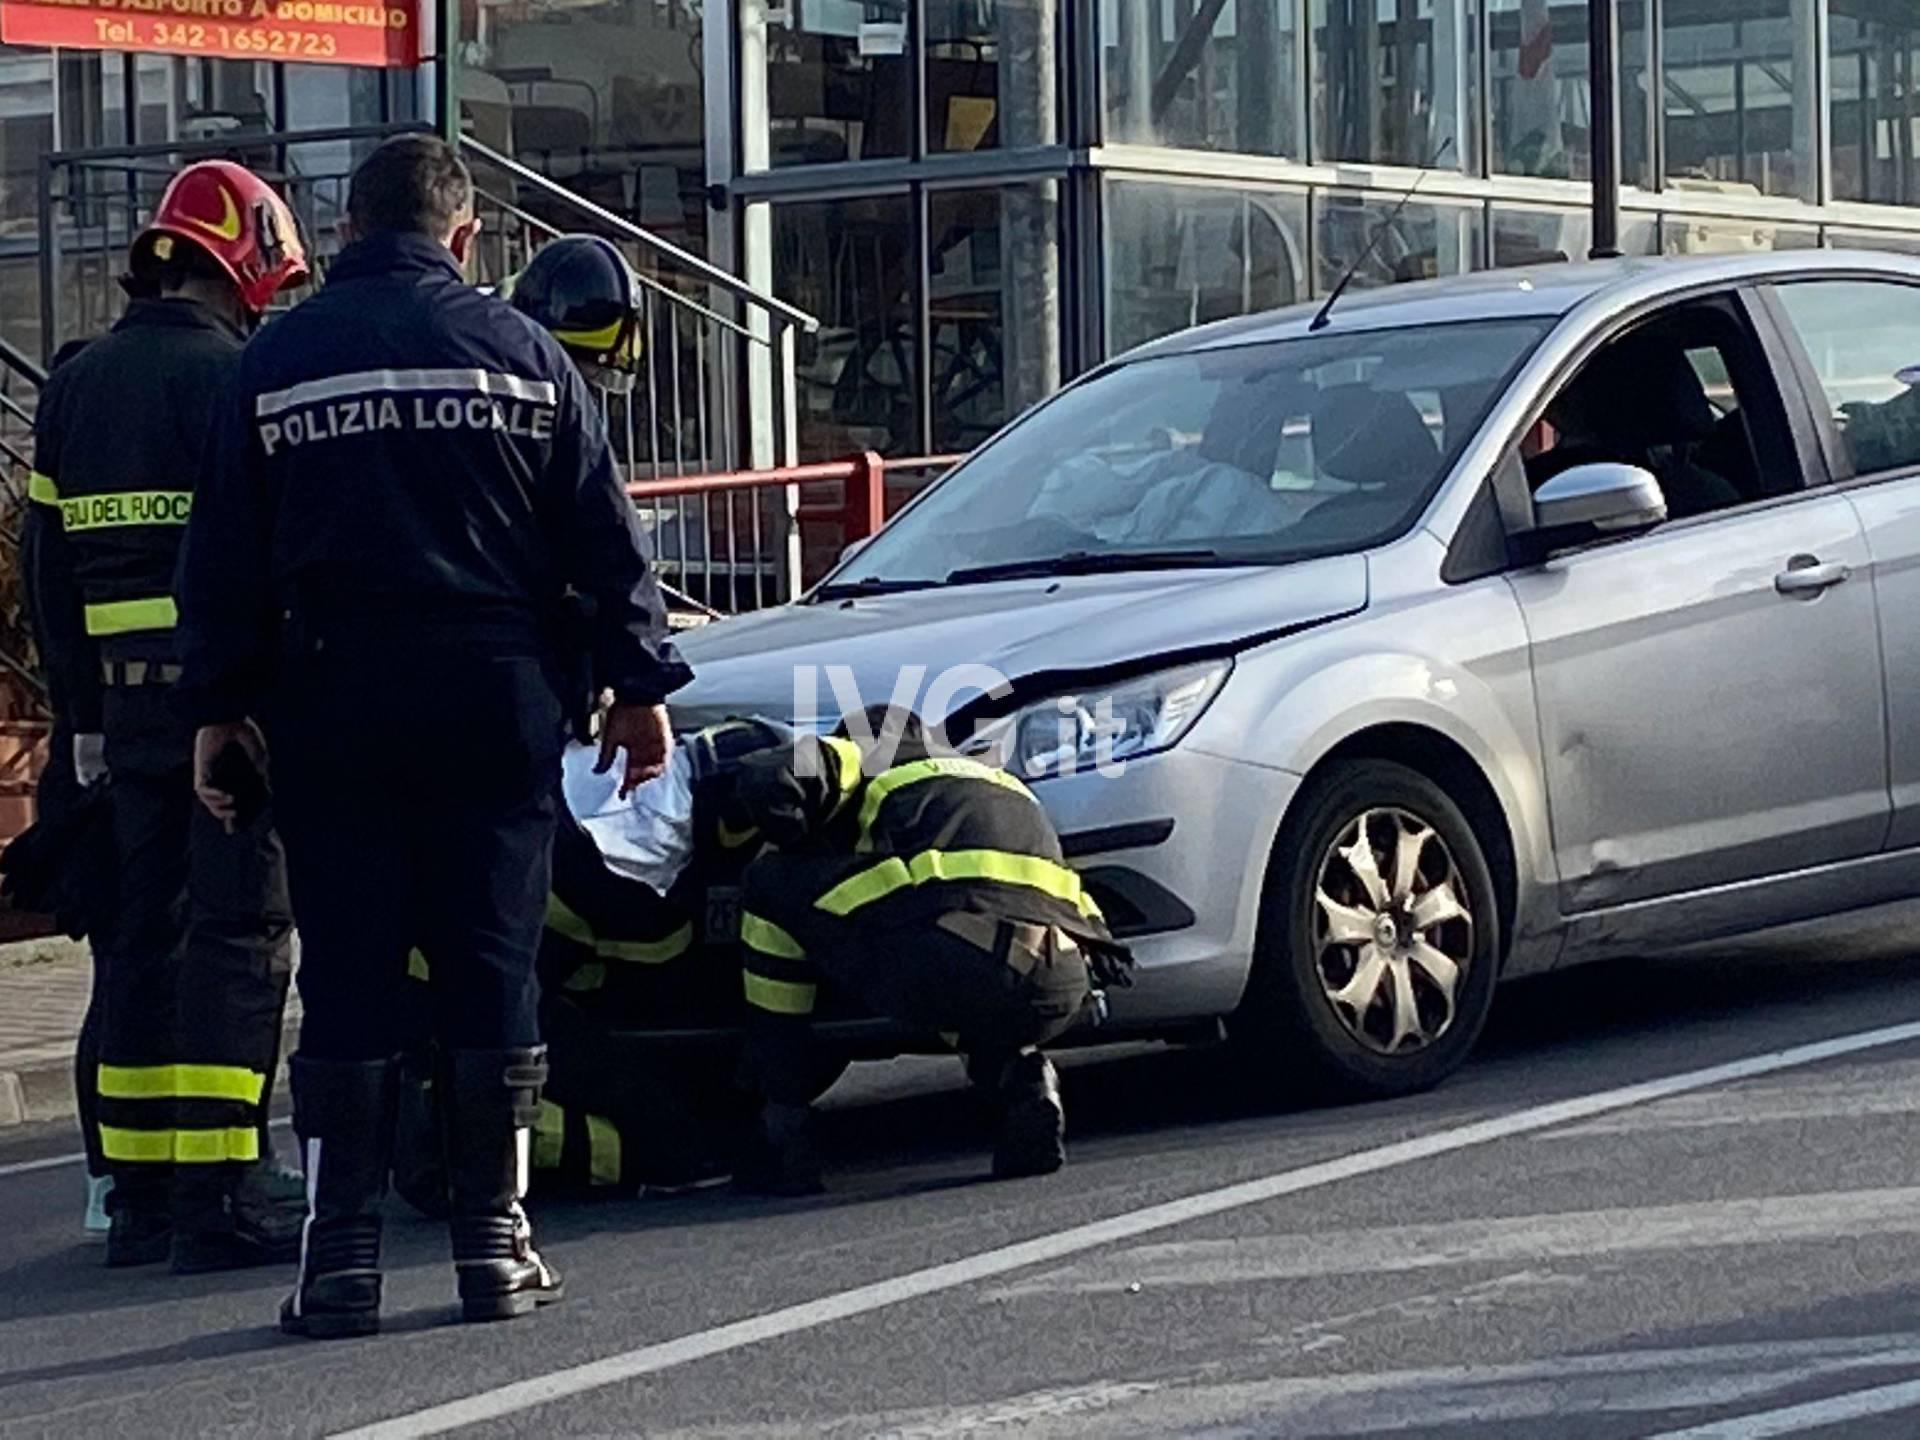 incidente pompieri generica albenga